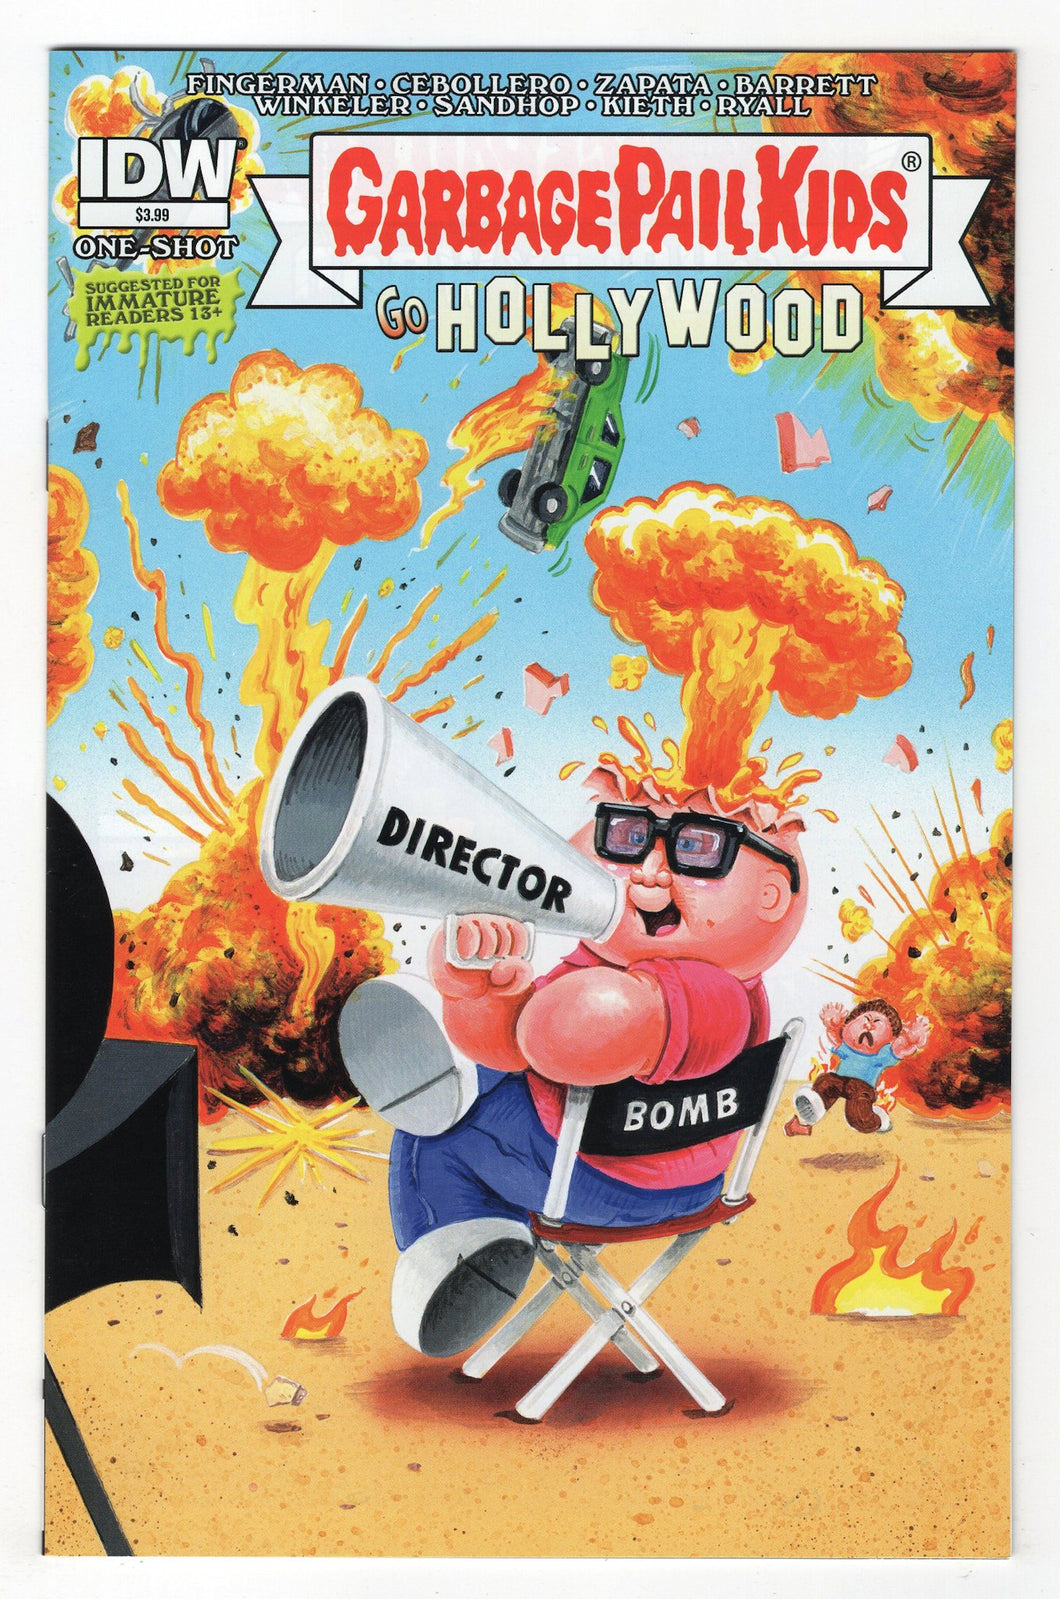 Garbage Pail Kids Go Hollywood #1 Cover Front